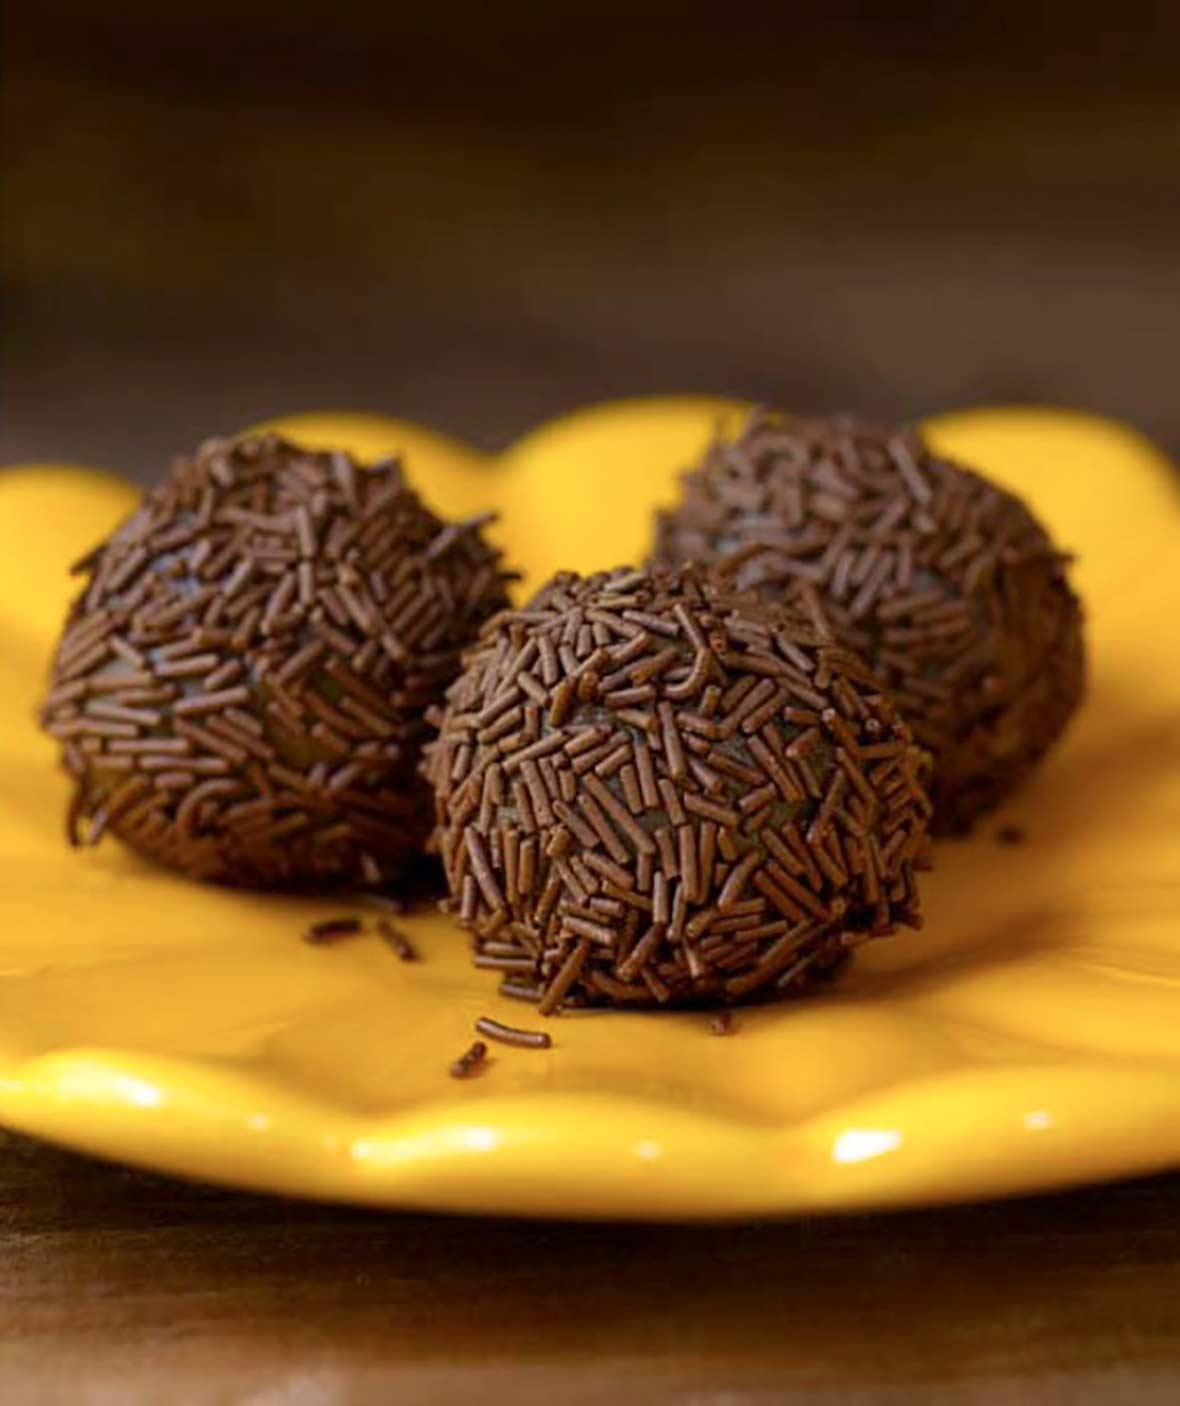 Three golf-ball size chocolate Brazilian candies covered with chocolate sprinkles on a yellow plate